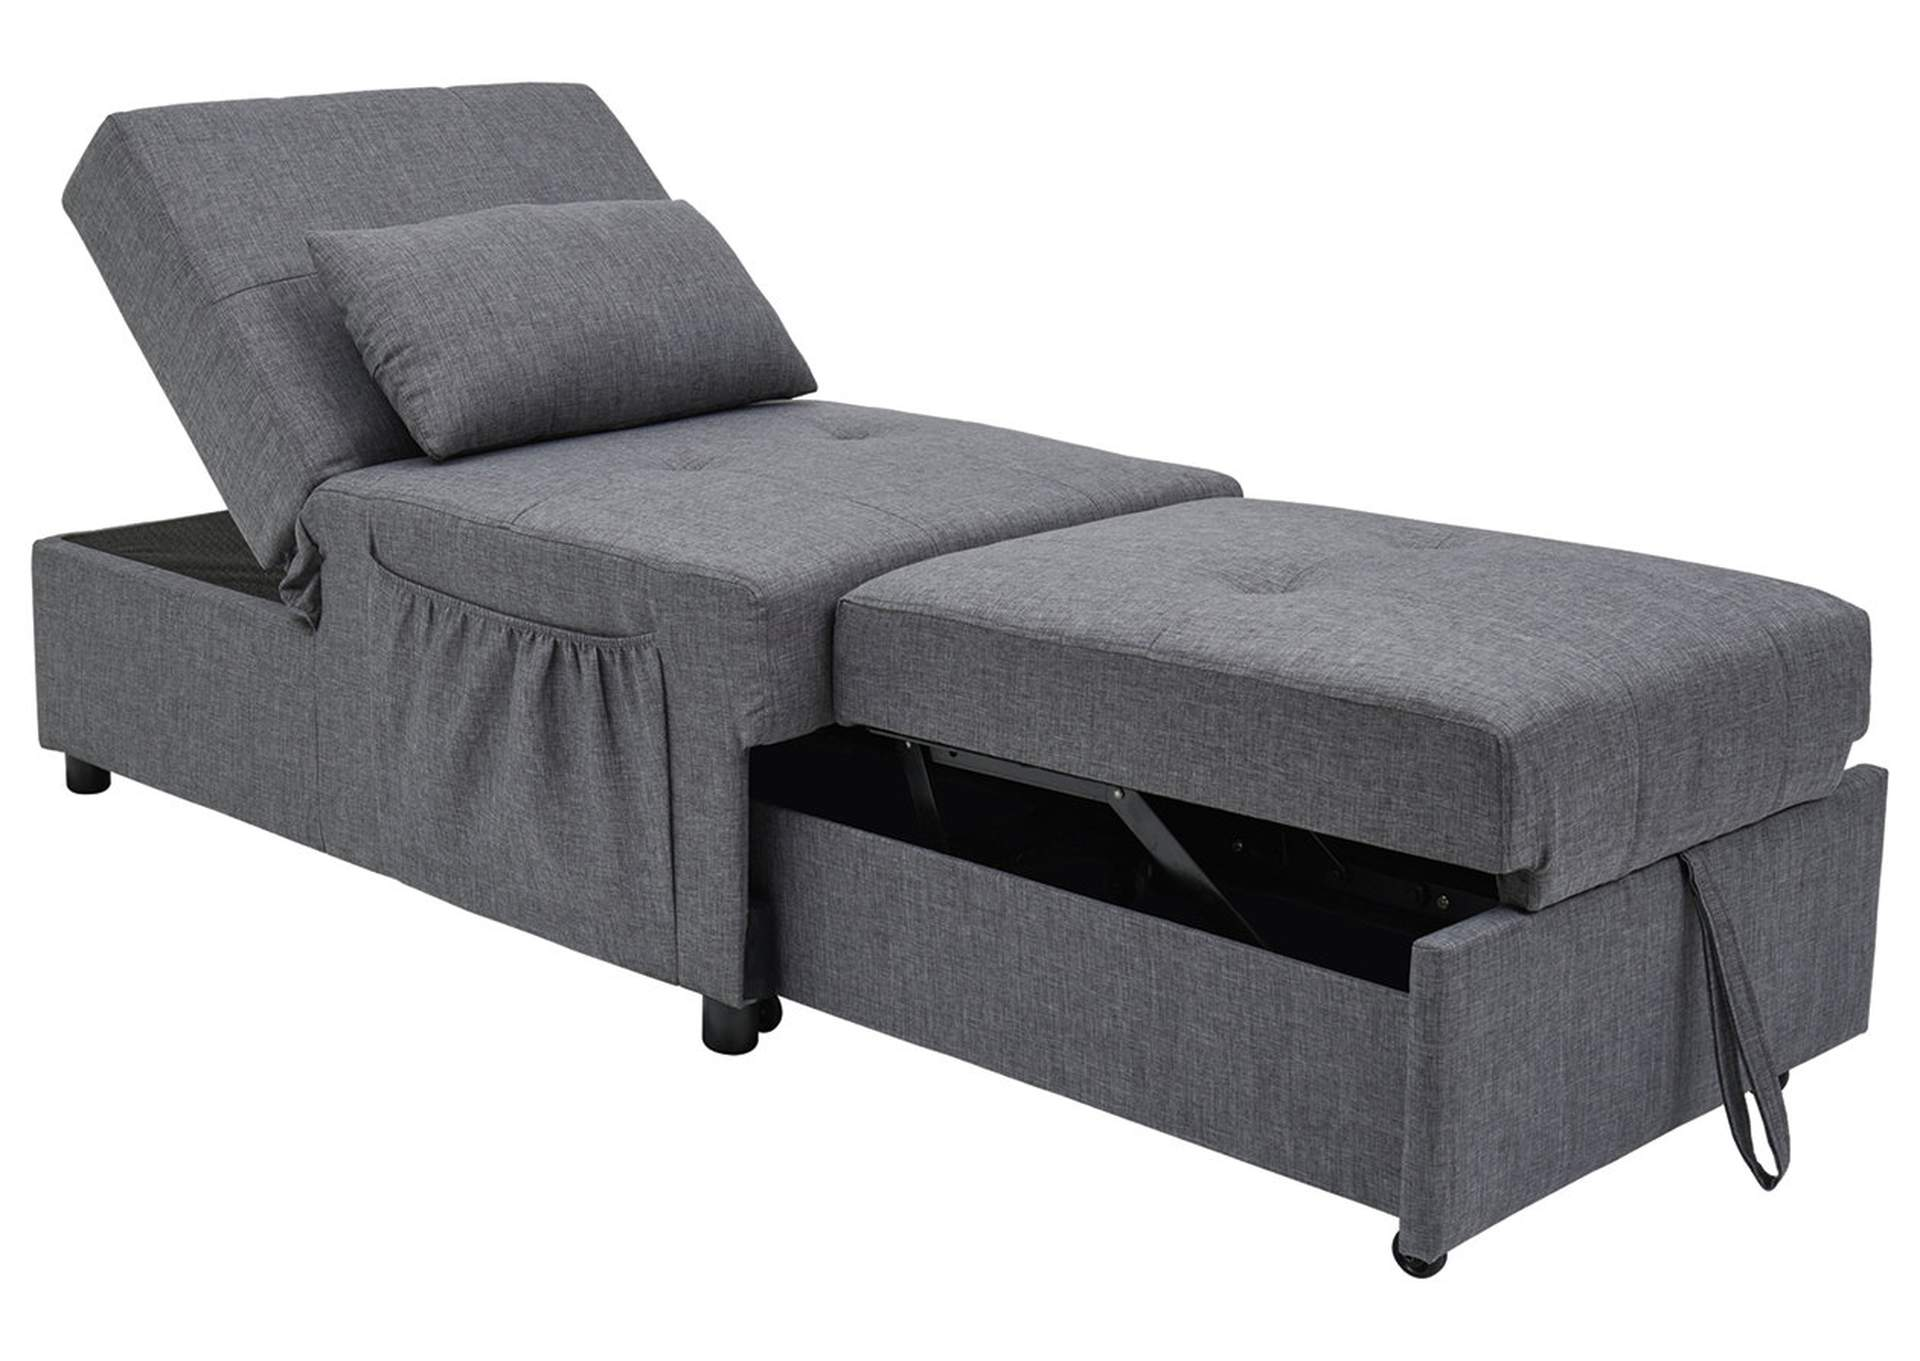 - Thrall Single Seat Pop Up Sleeper Best Buy Furniture And Mattress